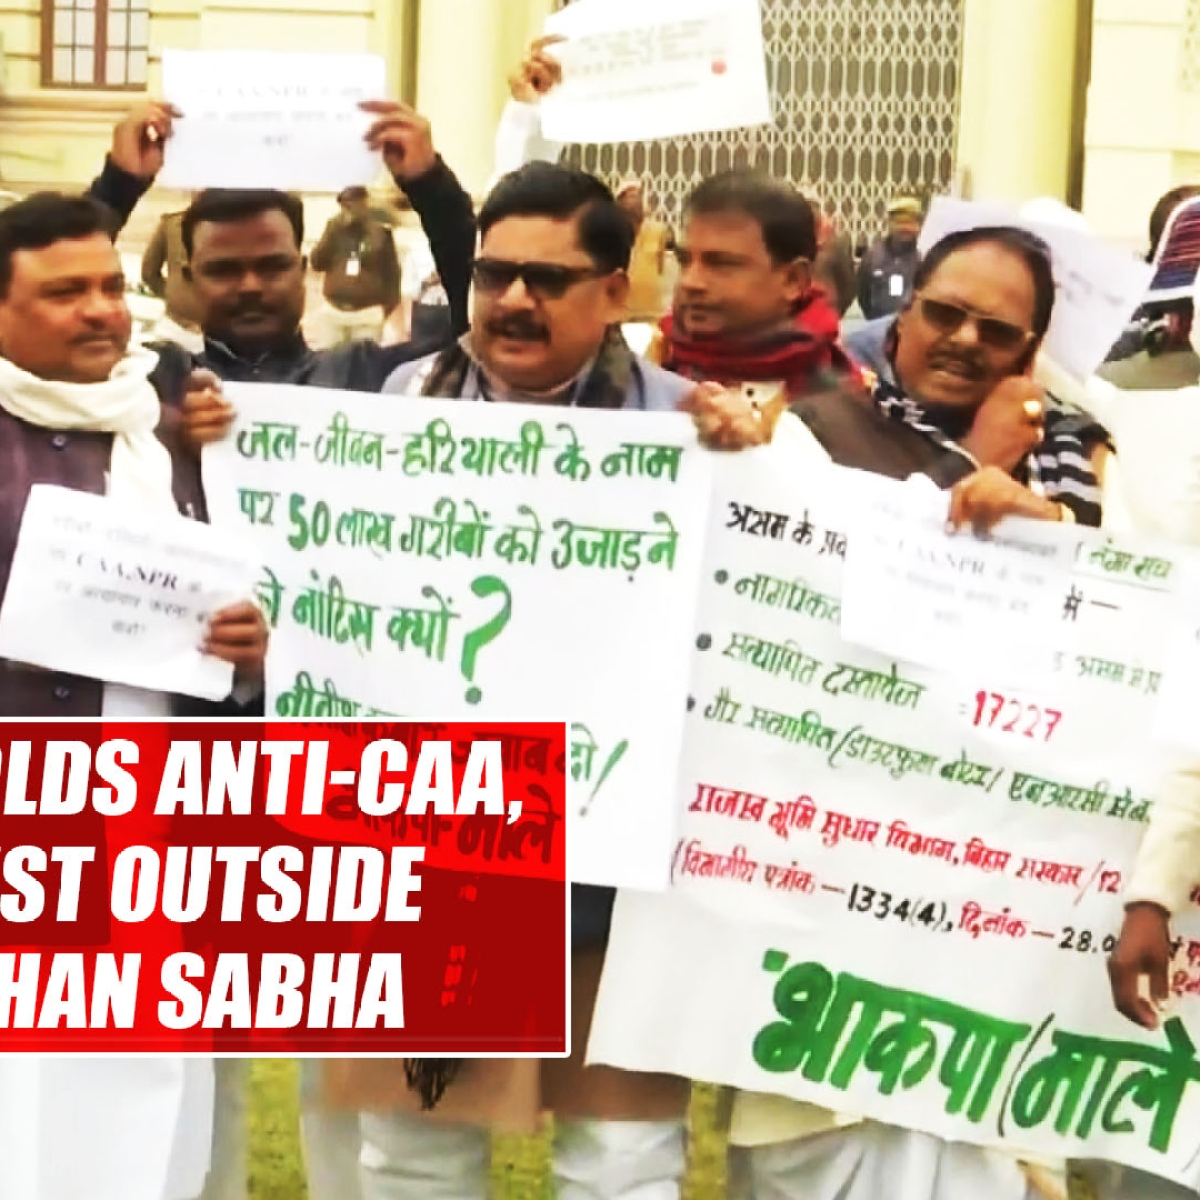 Opposition holds anti-CAA, NRC protest outside Bihar Vidhan Sabha